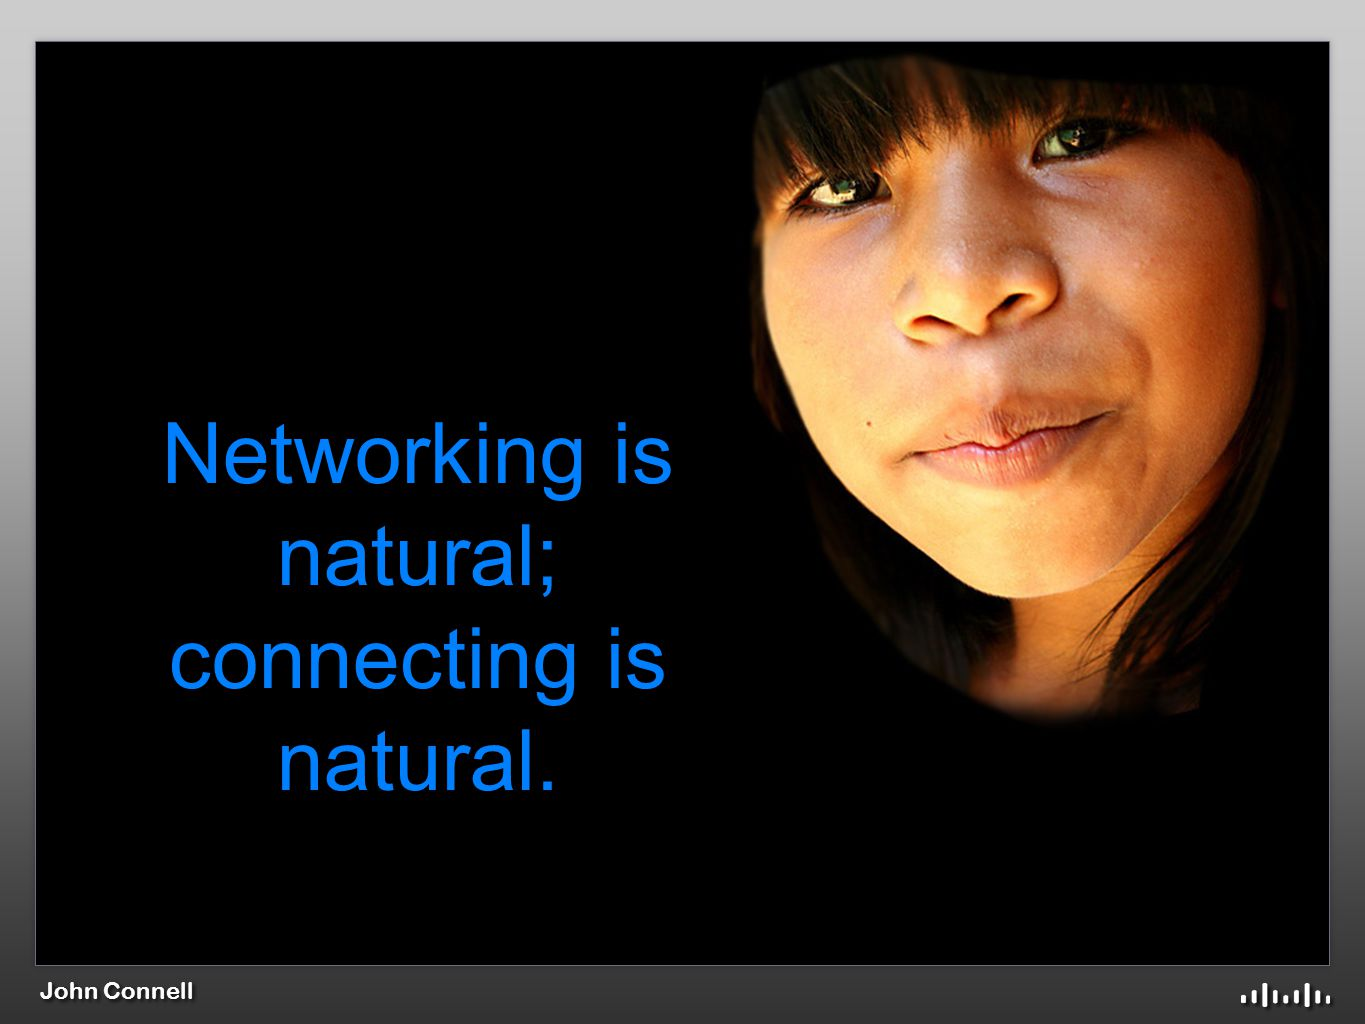 Networking is natural; connecting is natural.